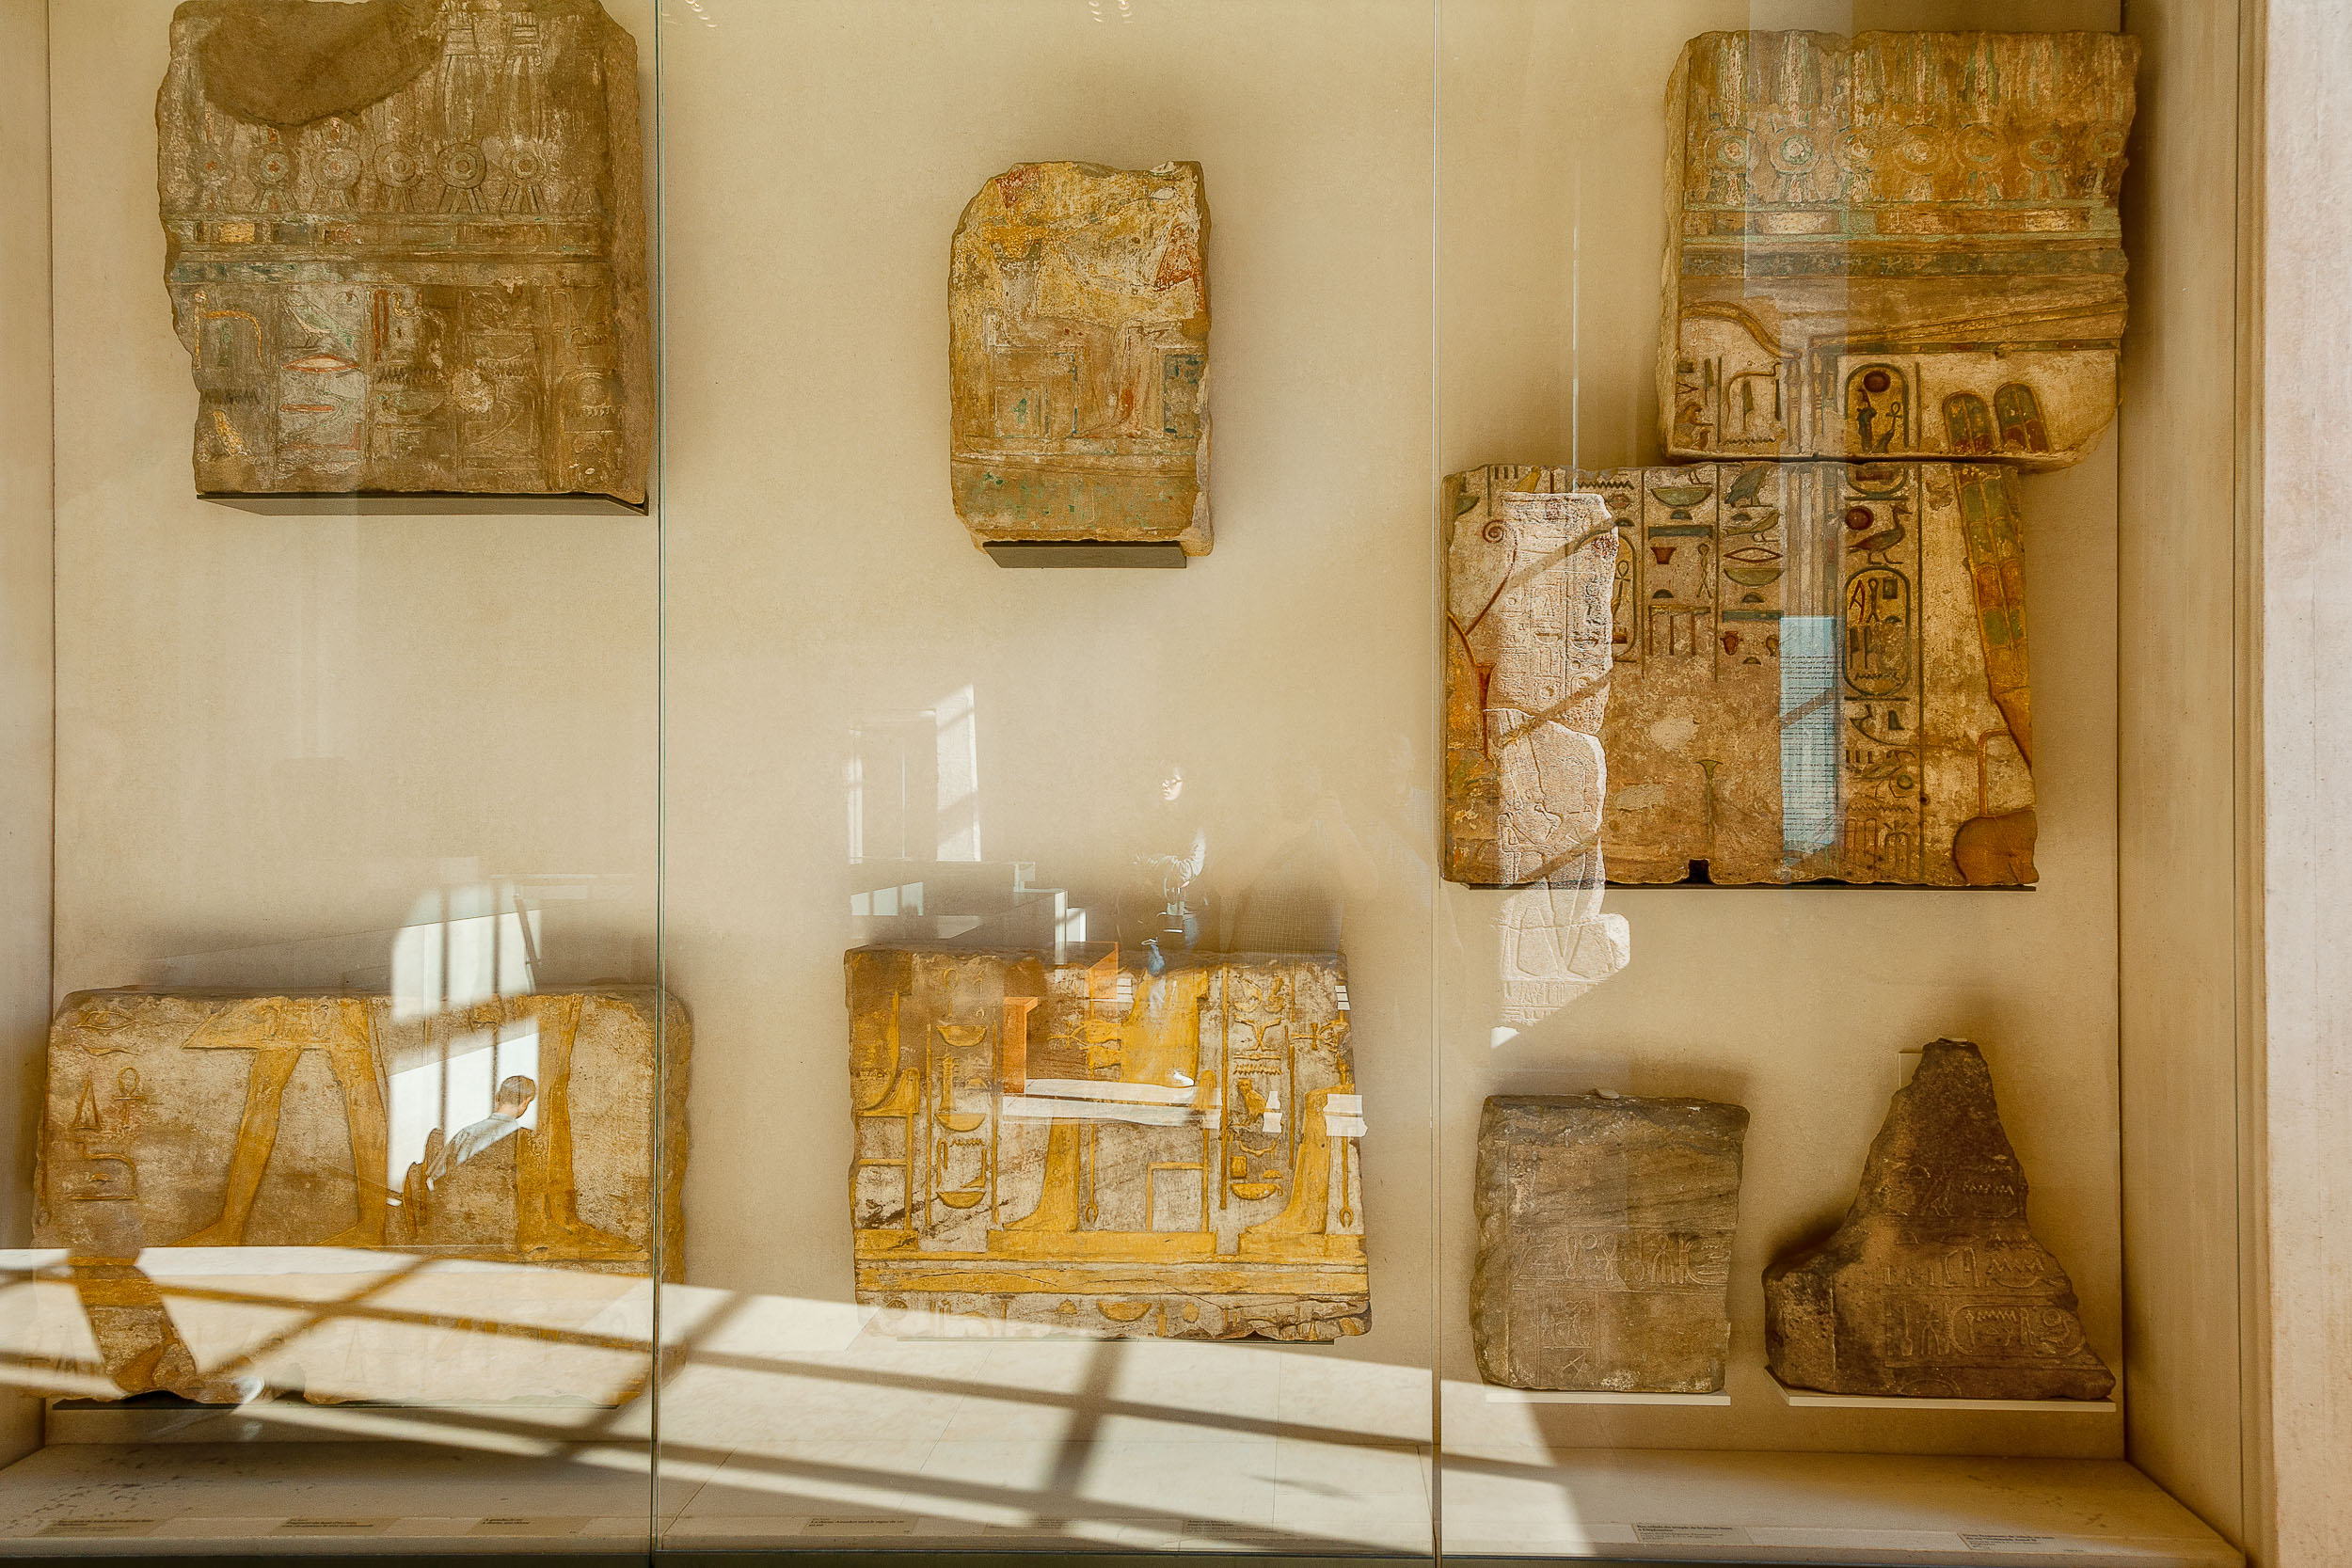 A display case showcasing  stone tablets  at the  Louvre  in  Paris, France .